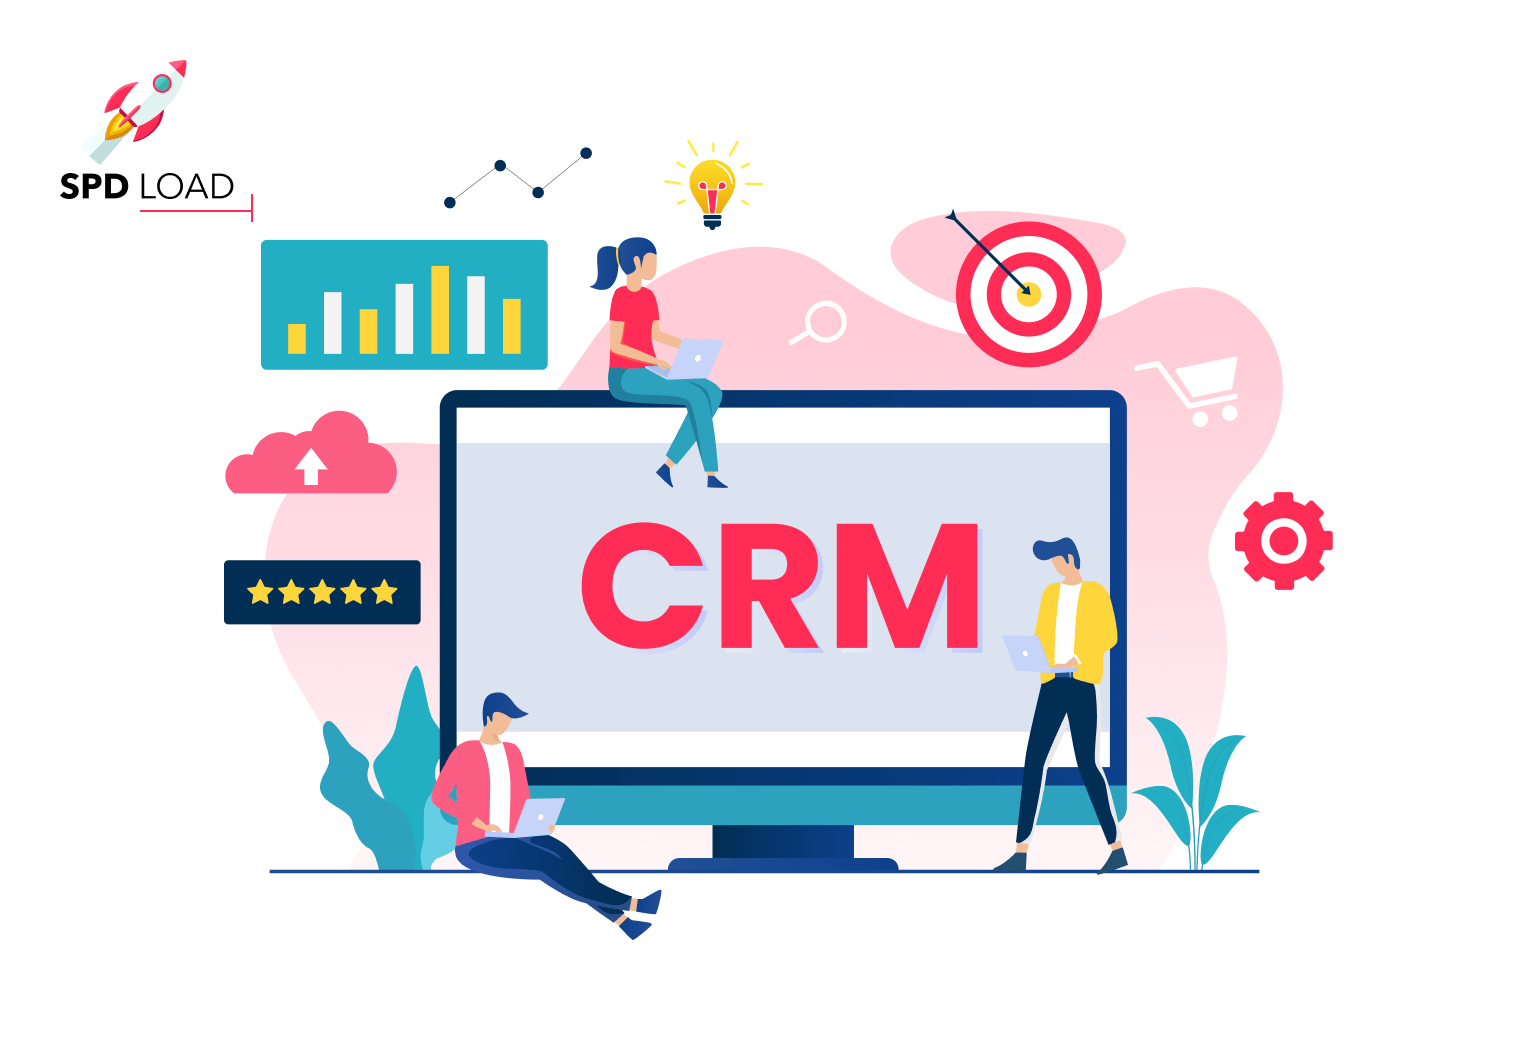 SpdLoad prepared an in-depth guide on how to build a CRM for startup founders and business owners